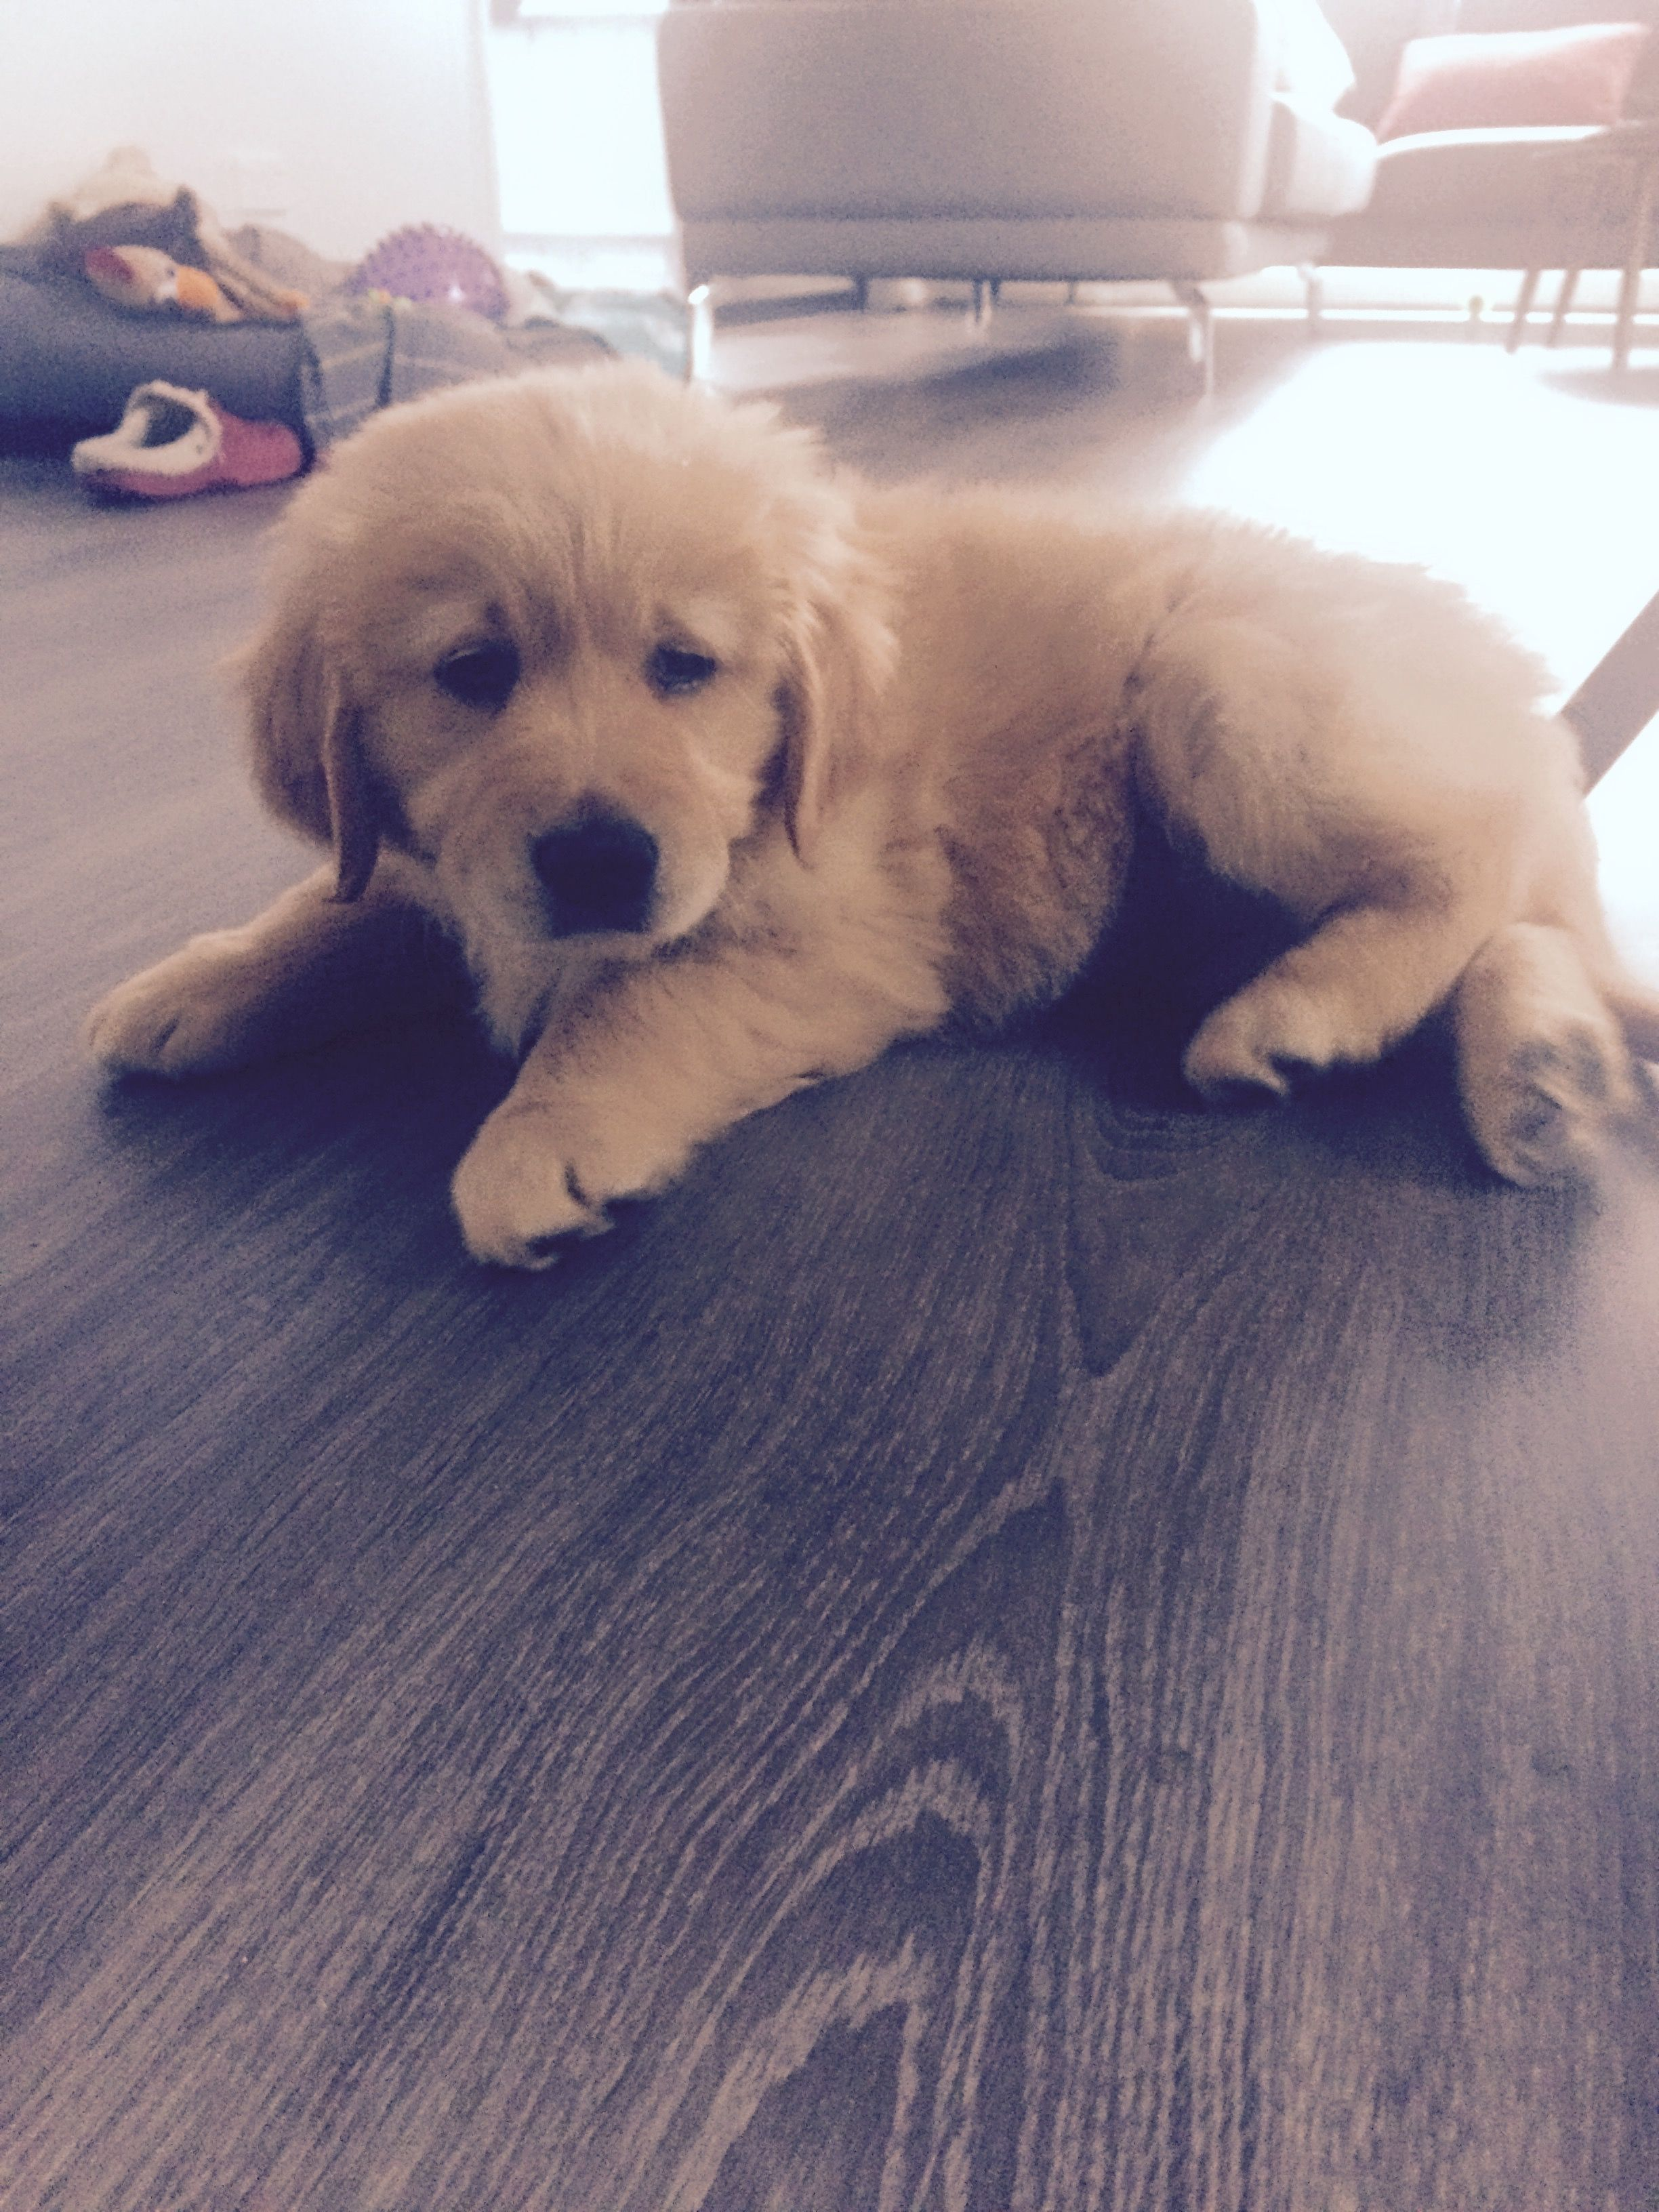 Cute Little Fluff Ball 9 Week Old Goldenretriever Puppy